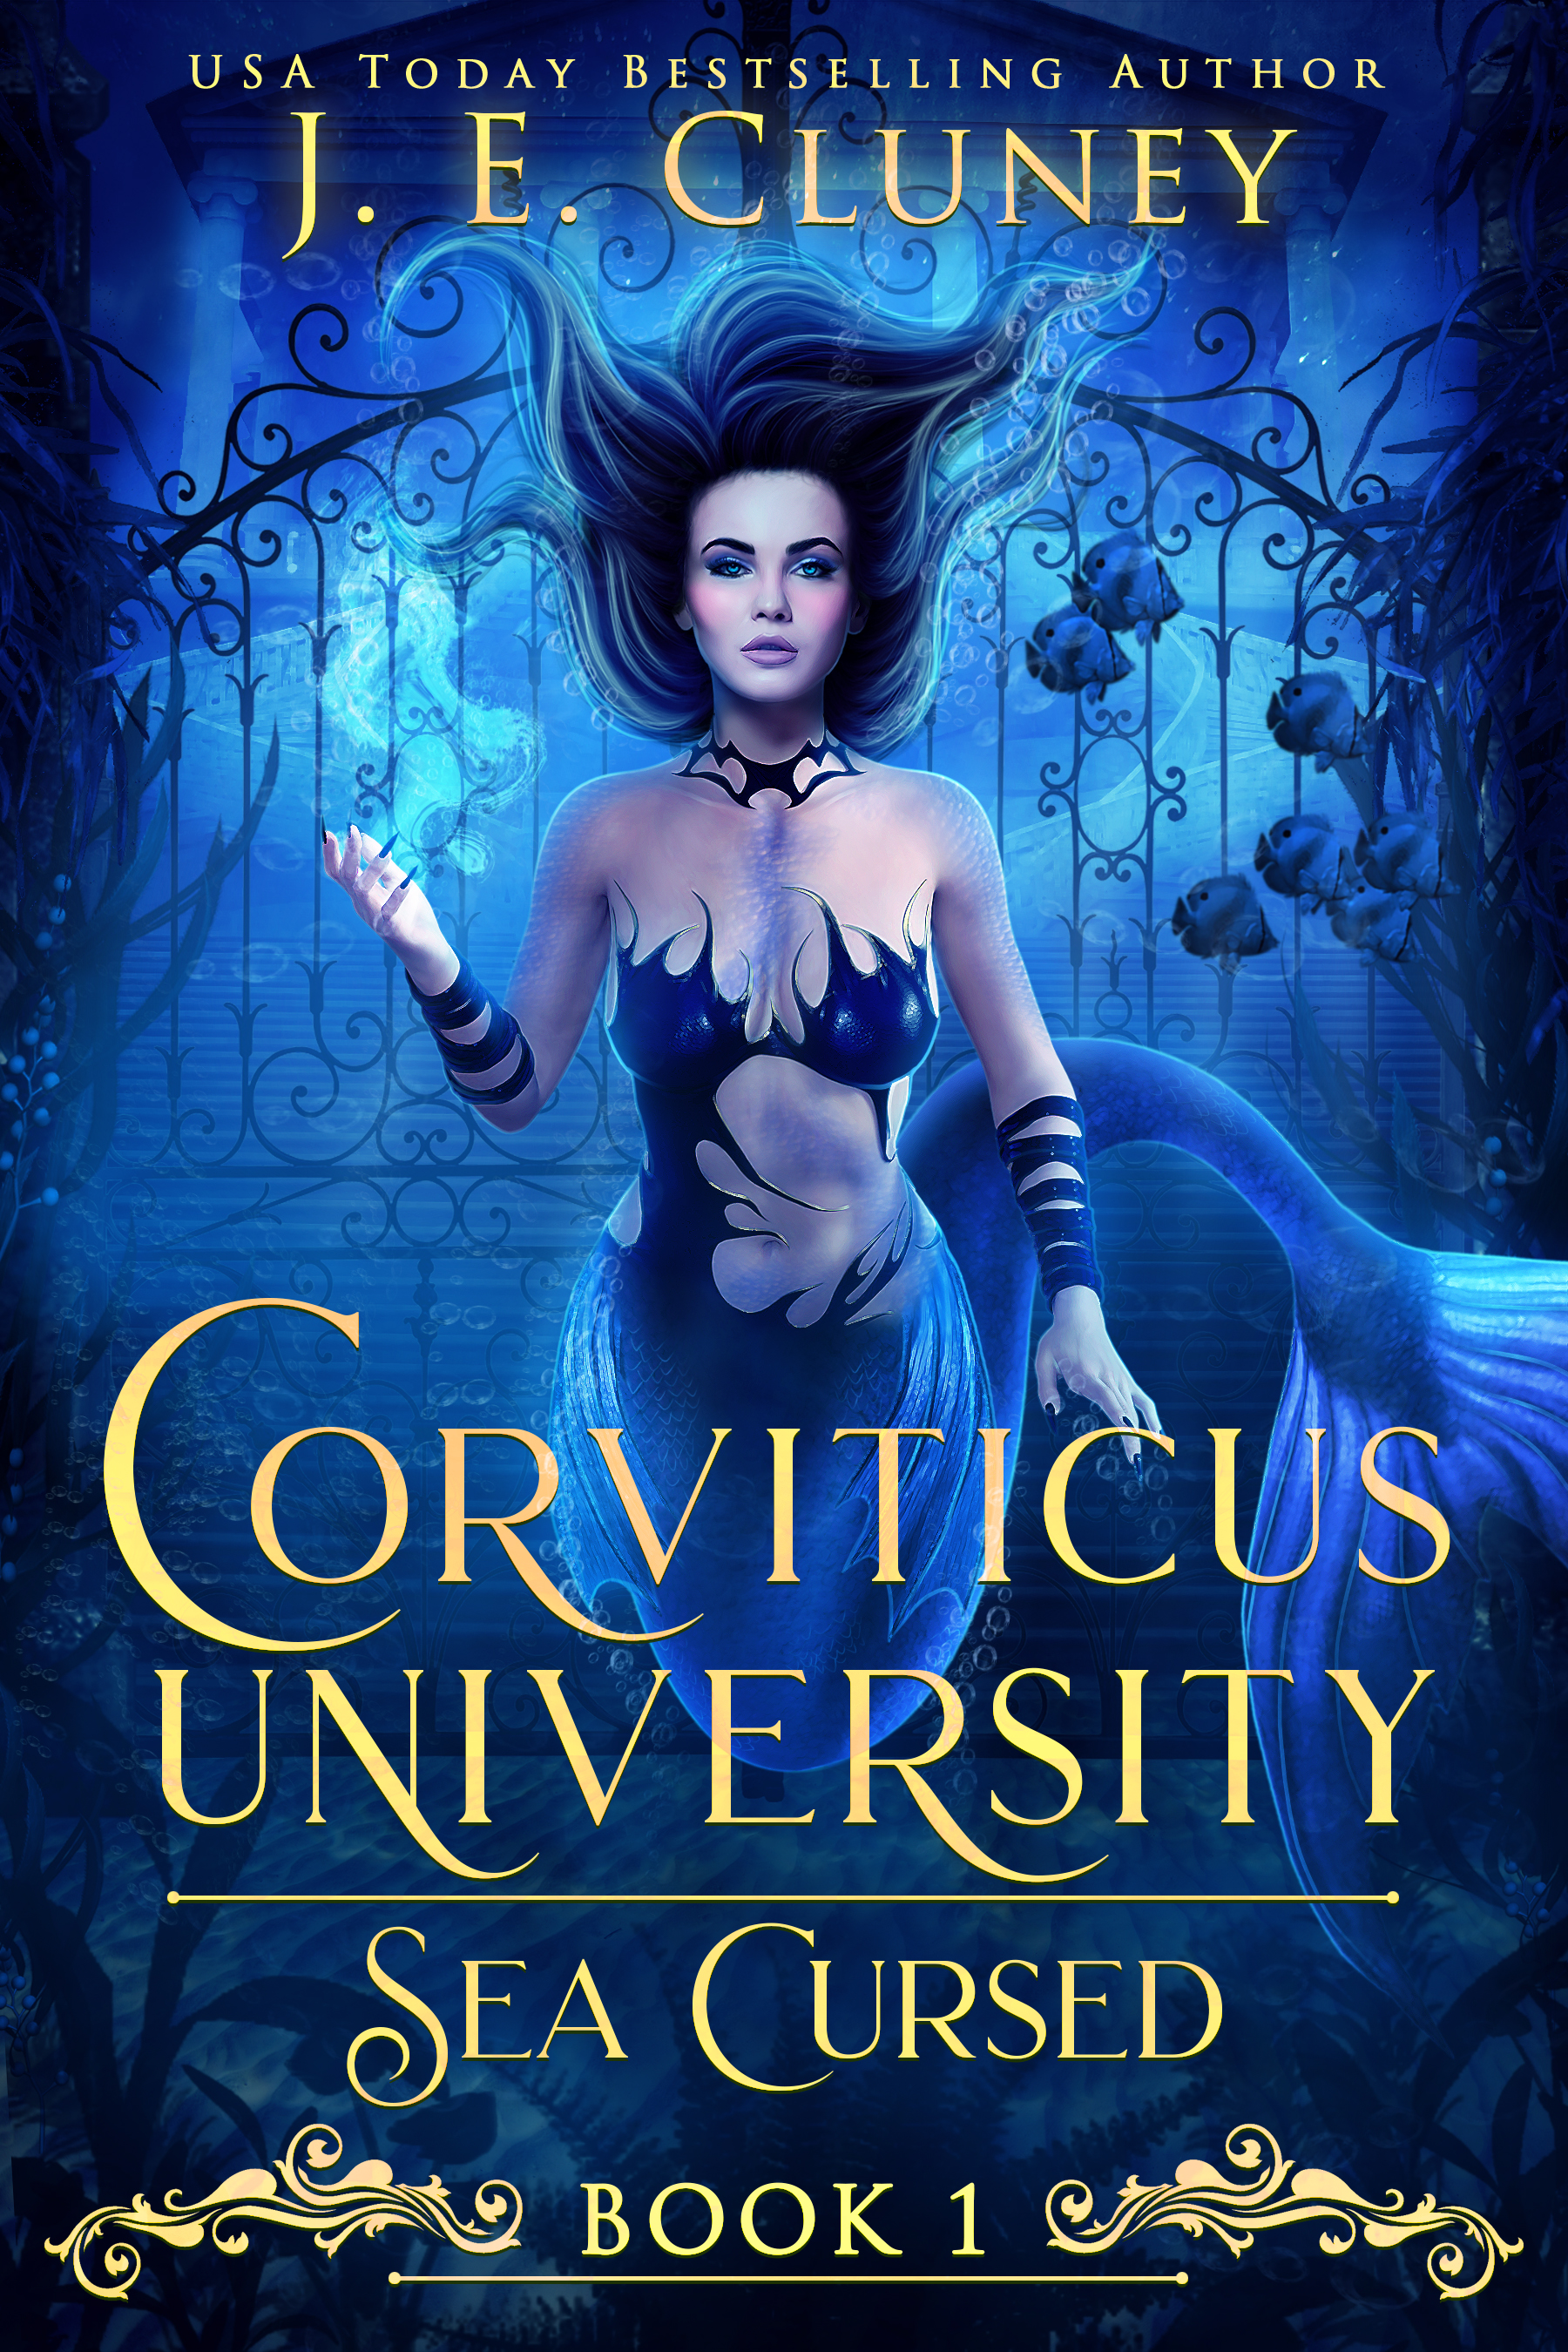 Corviticus University Sea Cursed